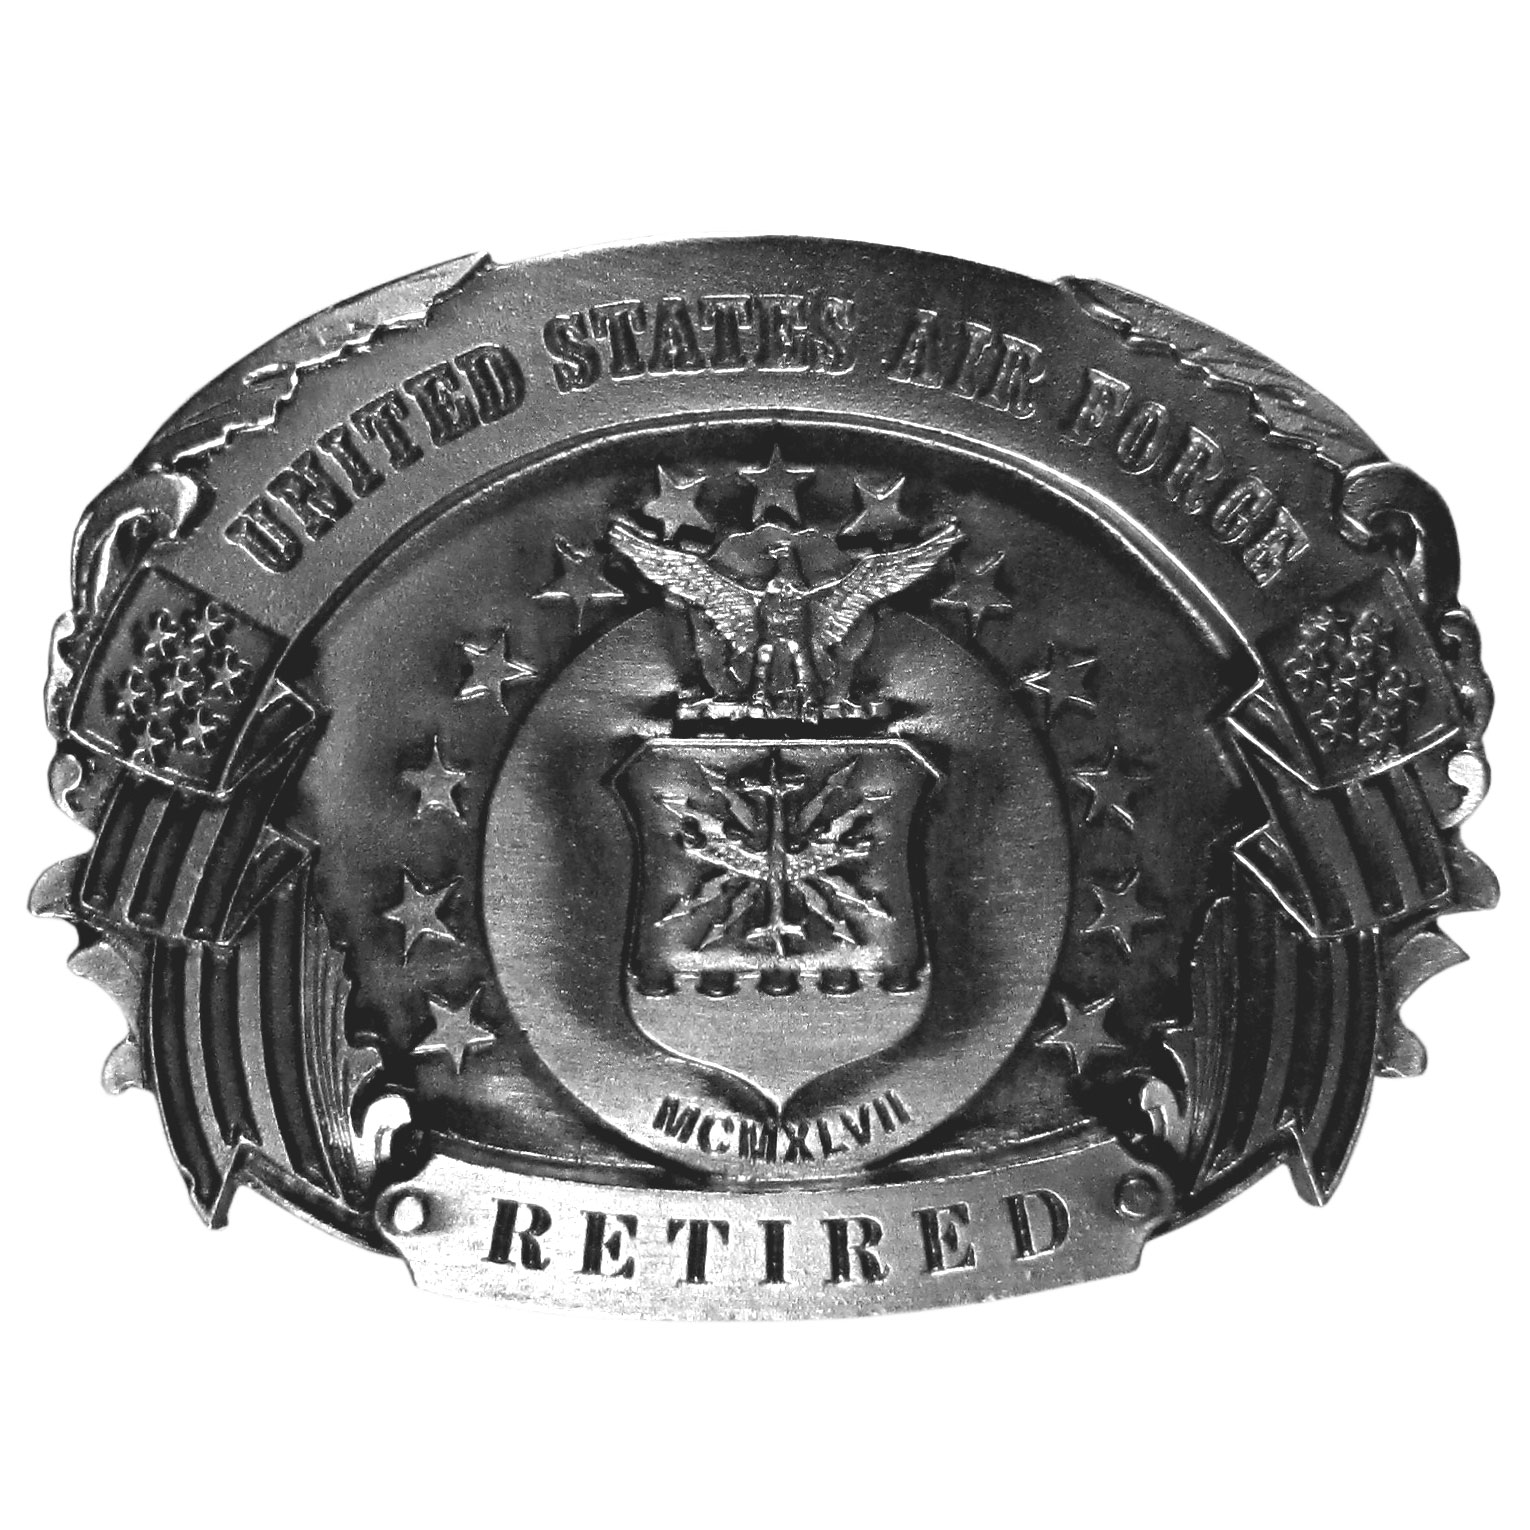 "Air Force Retired Antiqued Belt Buckle - ""This belt buckle says, """"United States Air Force, Retired"""" in bold with the US Air Force seal and an American flag banner.  On the back are the words, """"To all those who have served their country.  America says Thanks!"""""""